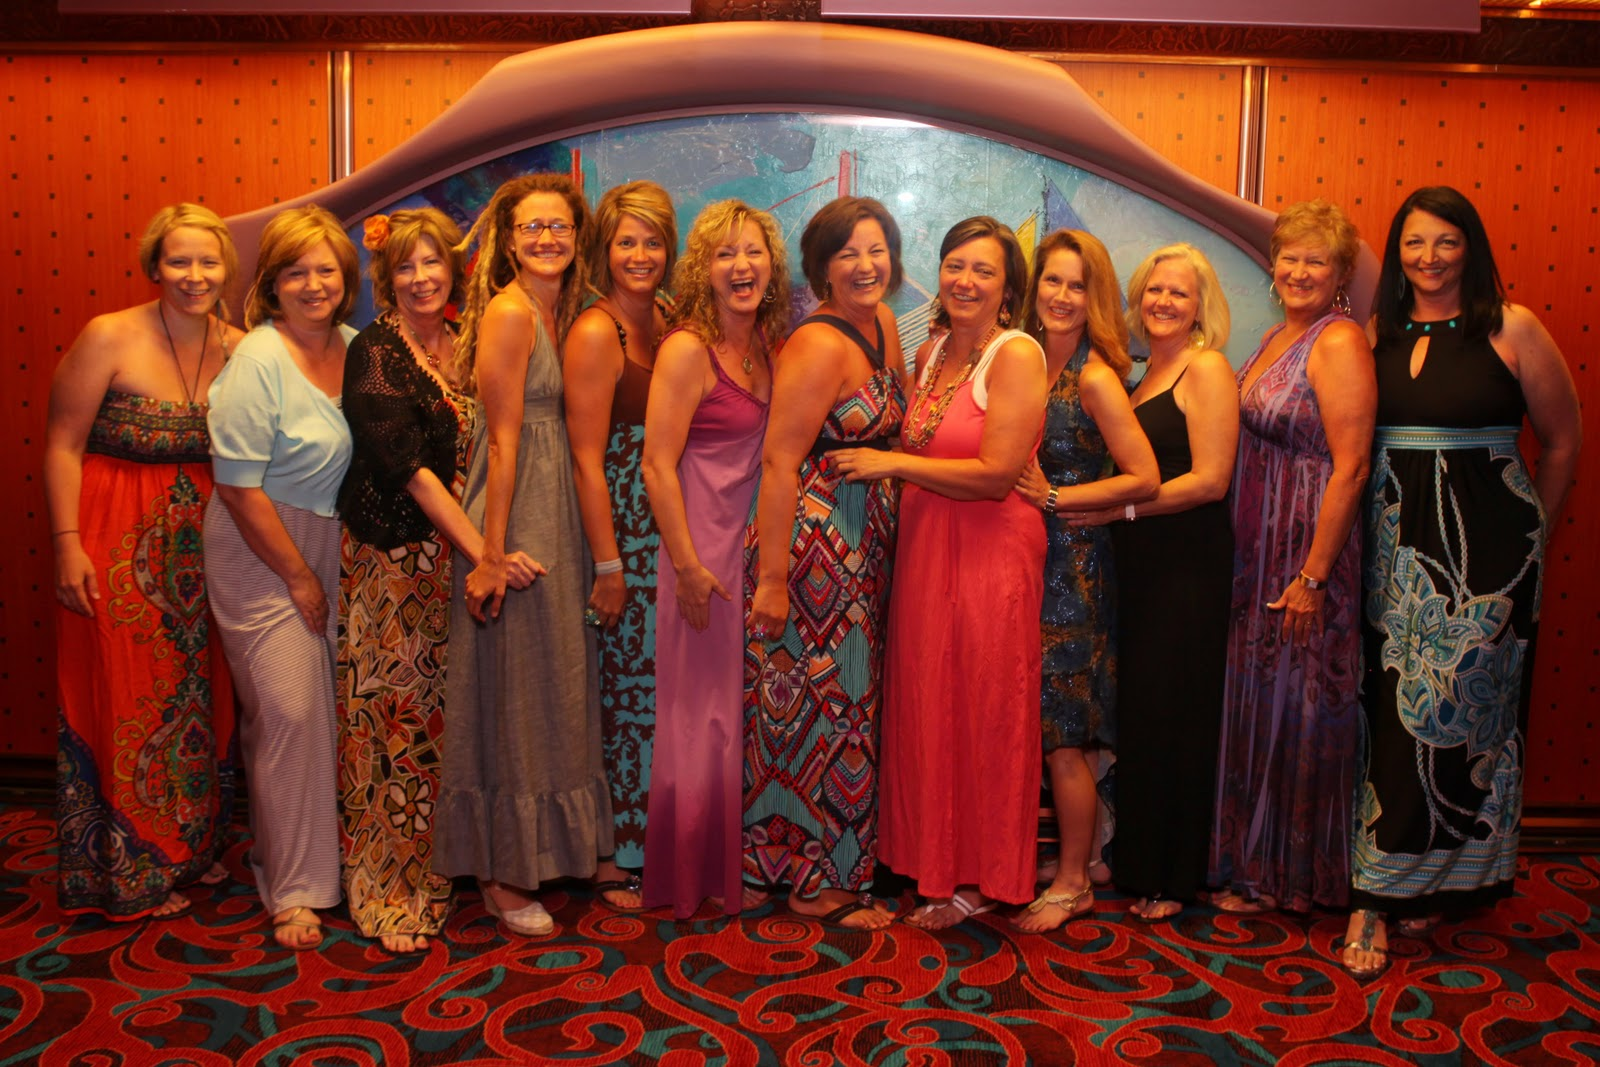 what to wear to dinner on a cruise, girls cruise, birthday cruise, packing for a cruise, girl trip